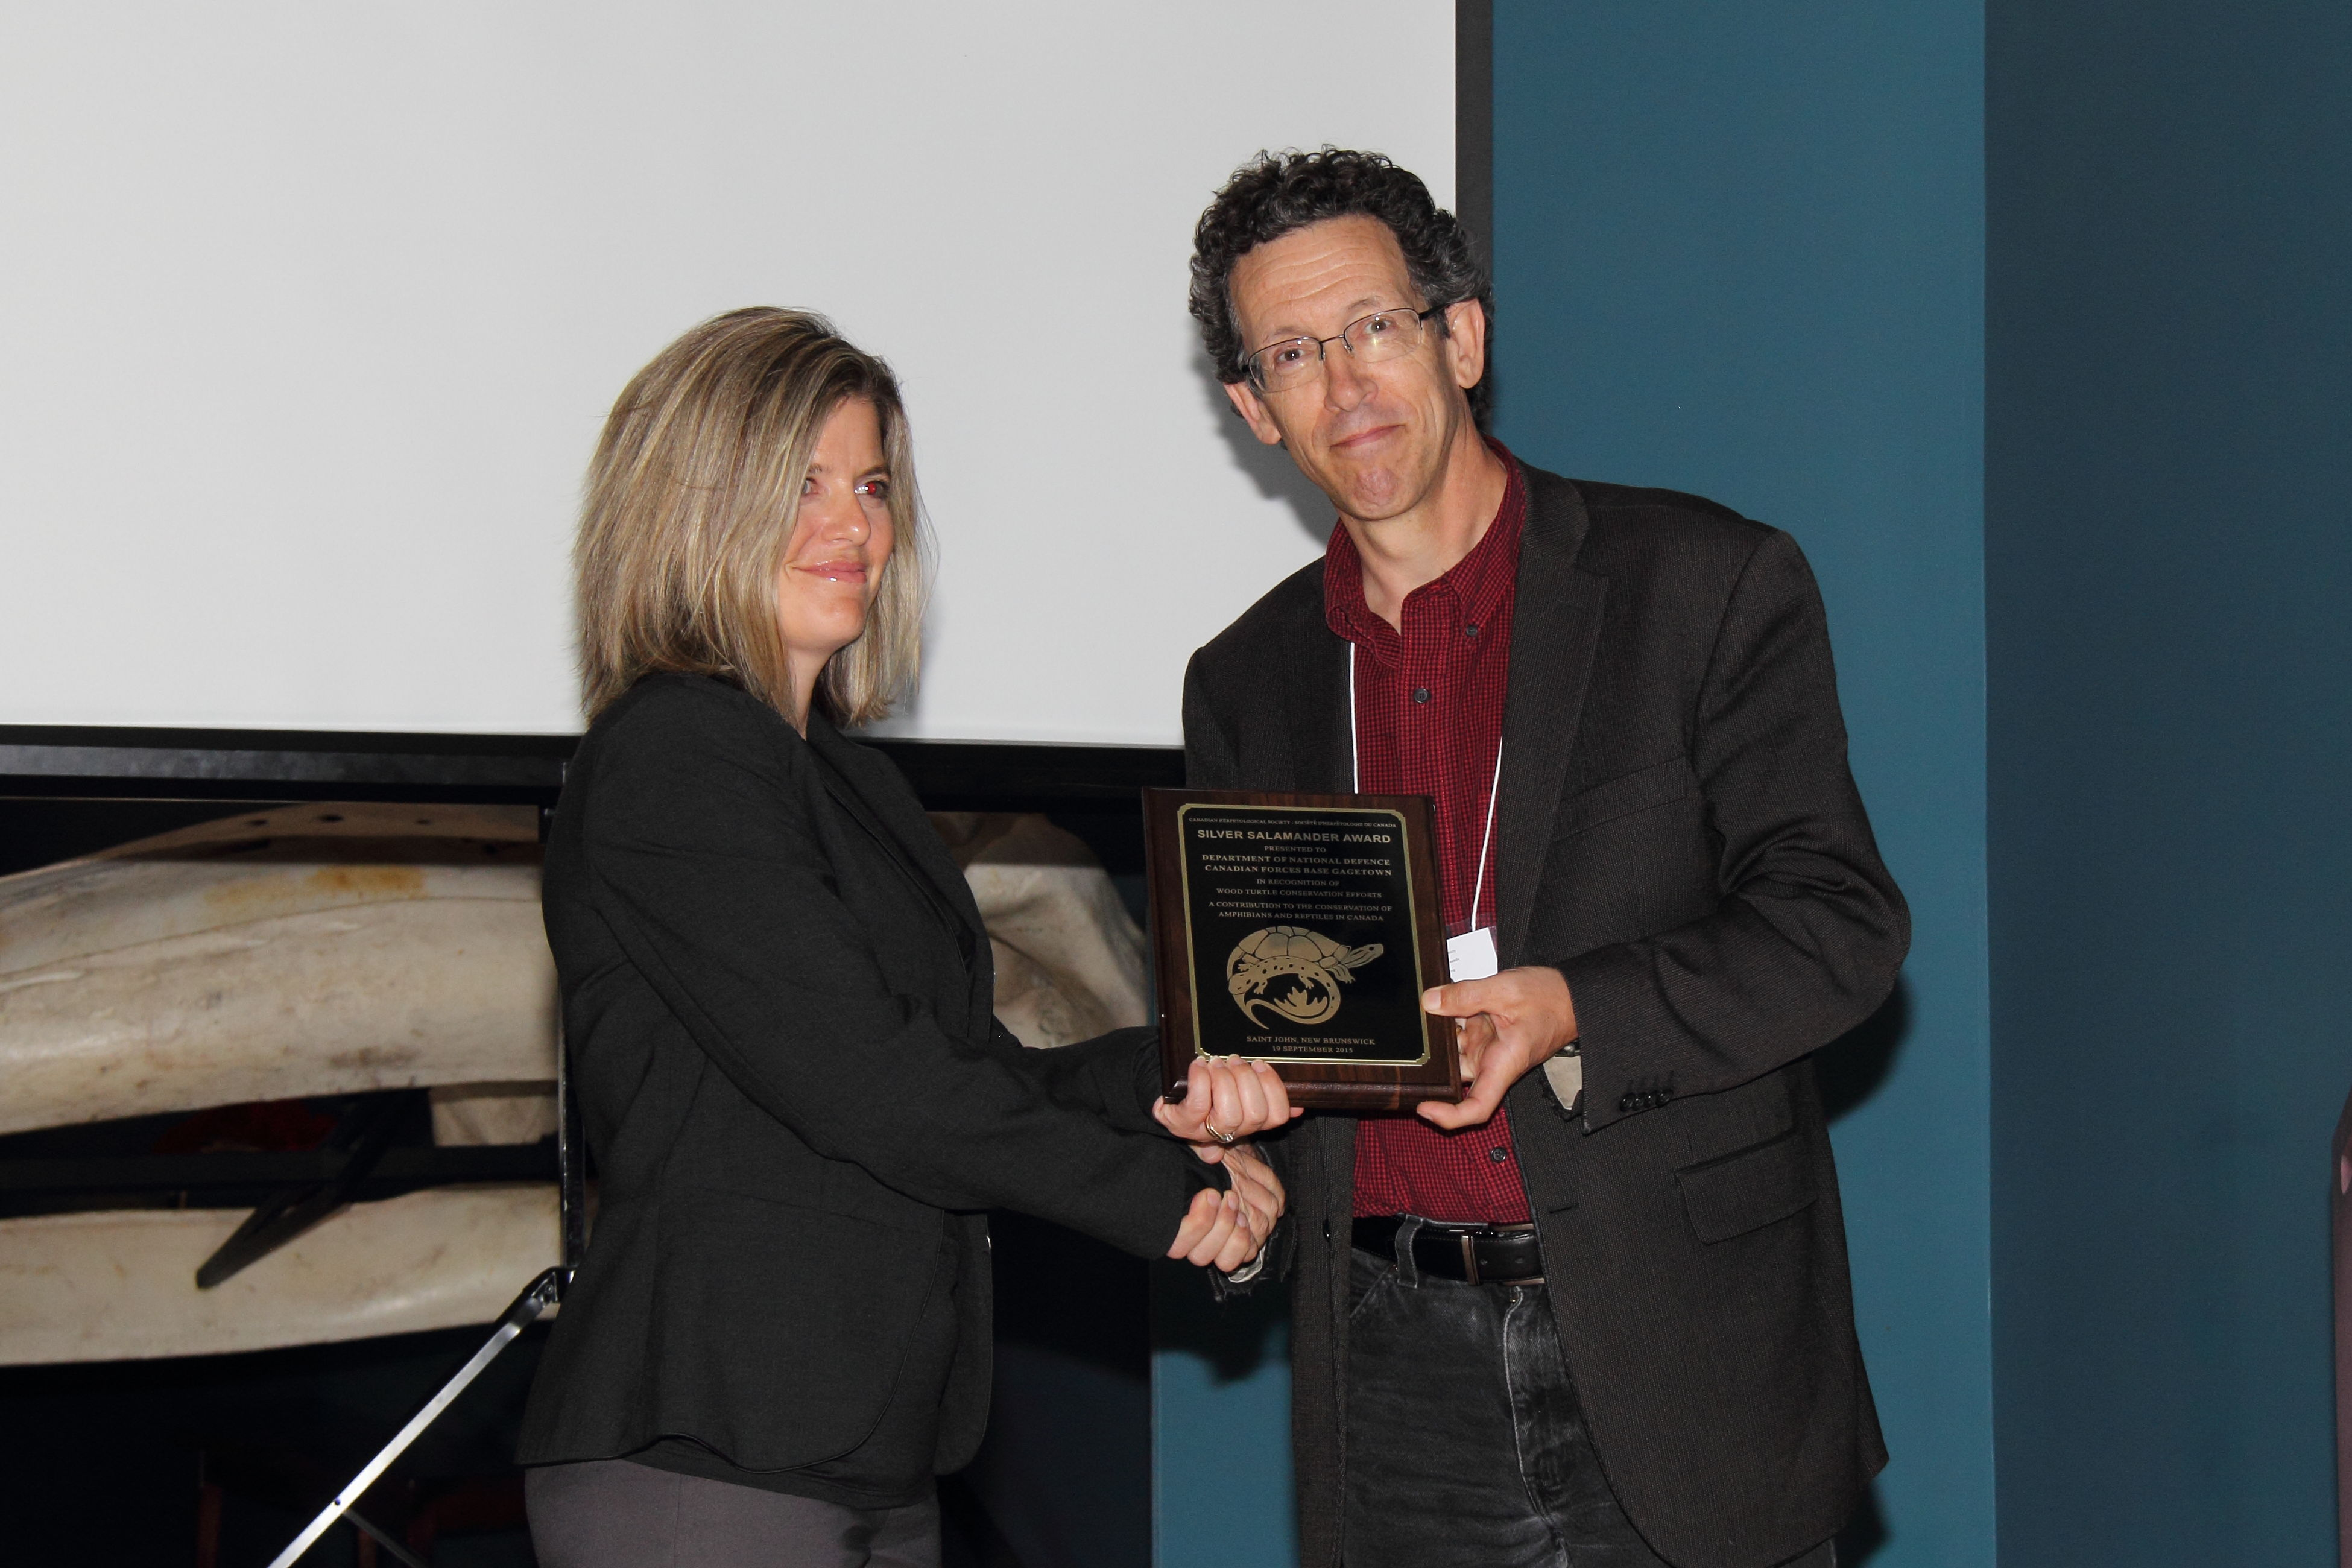 Dr. Don McAlpine, Head Curator of the New Brunswick Museum, presents the Silver Salamander Award to Deanna McCullum, Range Biologist at 5th Canadian Division Support Base Gagetown at the Annual Meeting of the Canadian Herpetological Society on September 19, 2015 in recognition of the base's contribution to the conservation of Wood Turtles. Photo by: Joe Crowley.